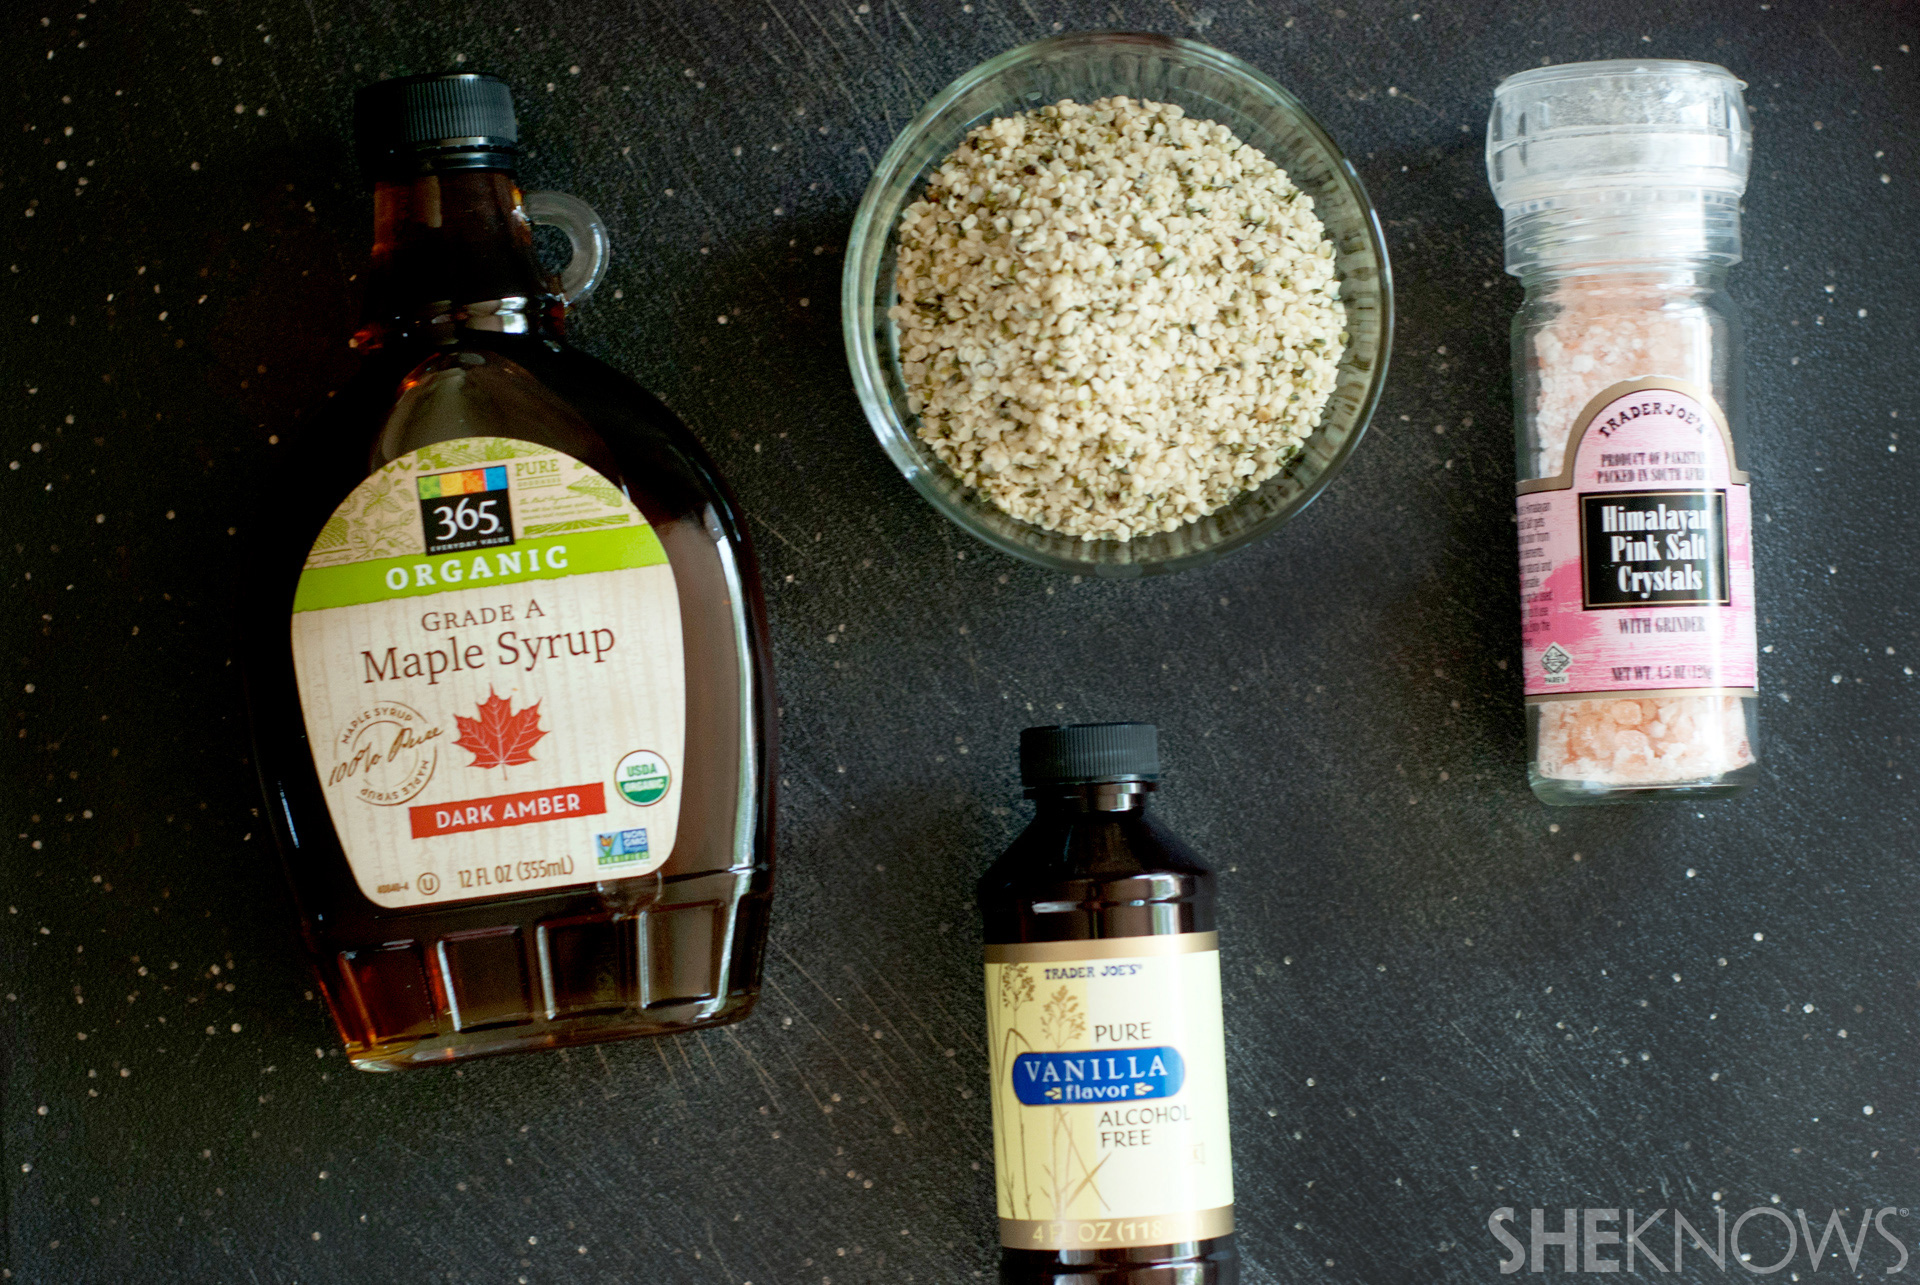 maple-vanilla hemp milk: Ingredients